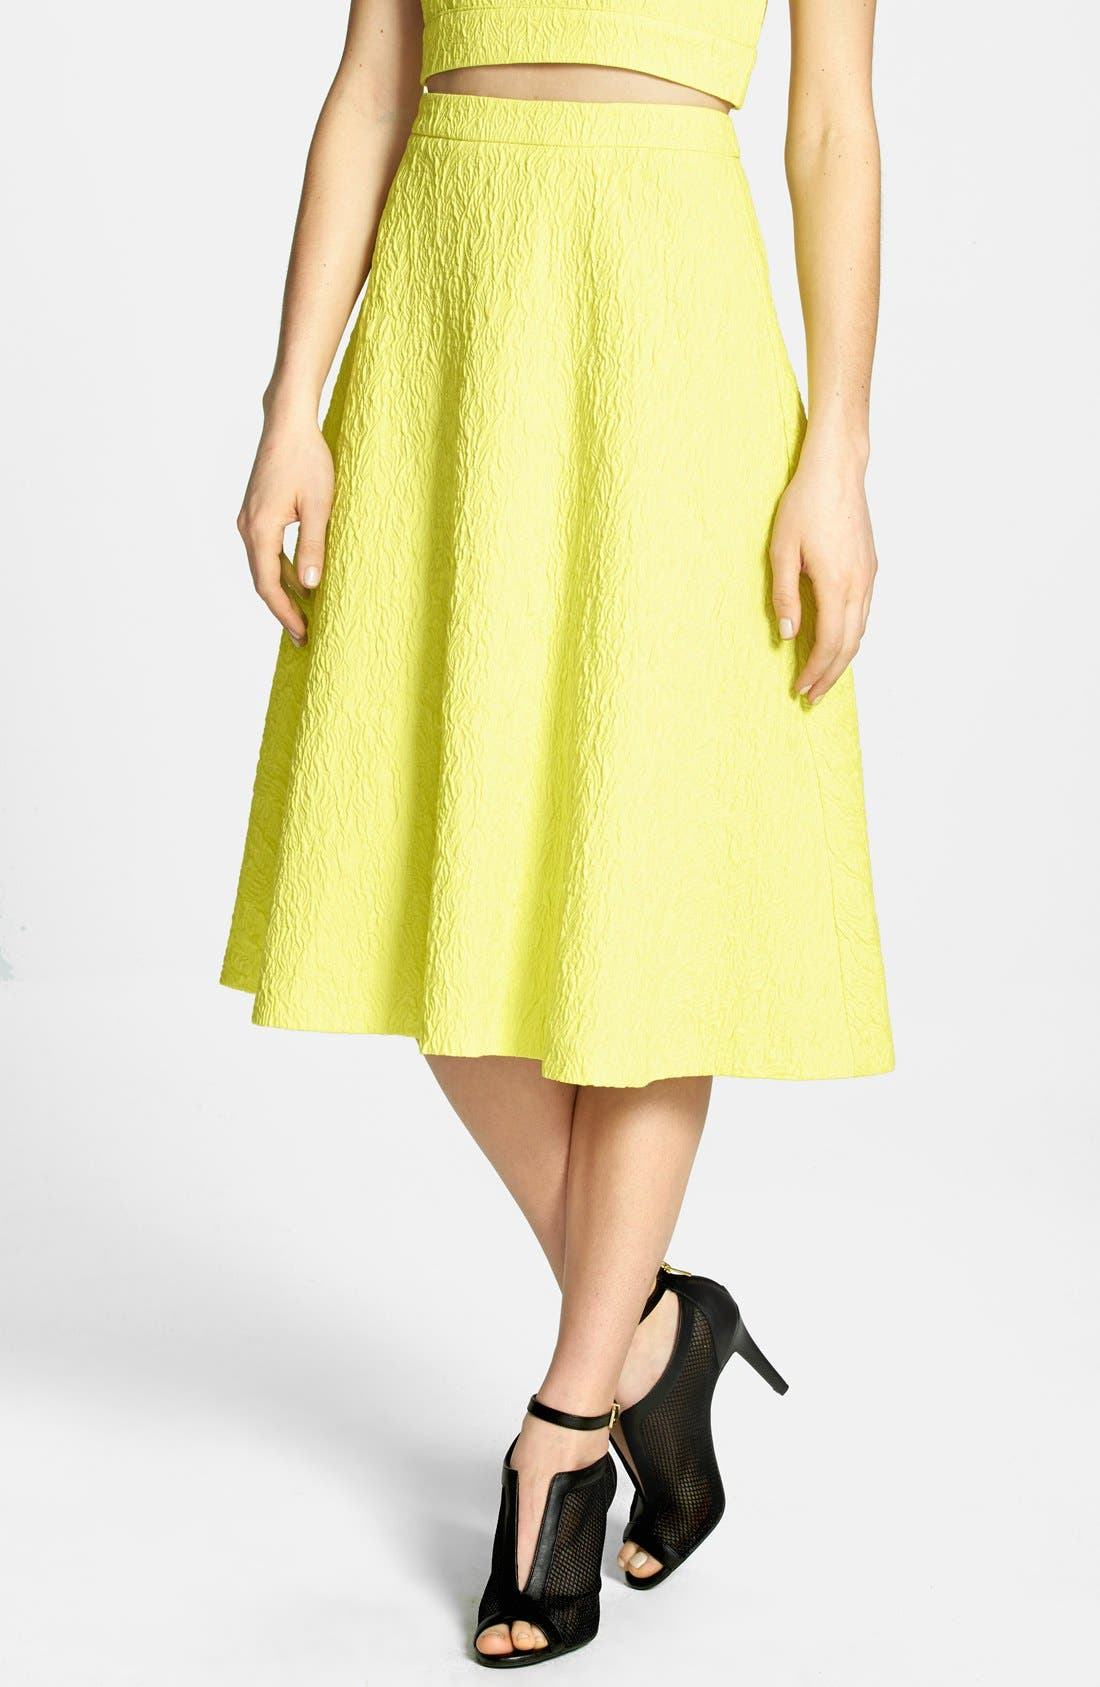 JOA Textured A-Line Midi Skirt,                         Main,                         color, 725